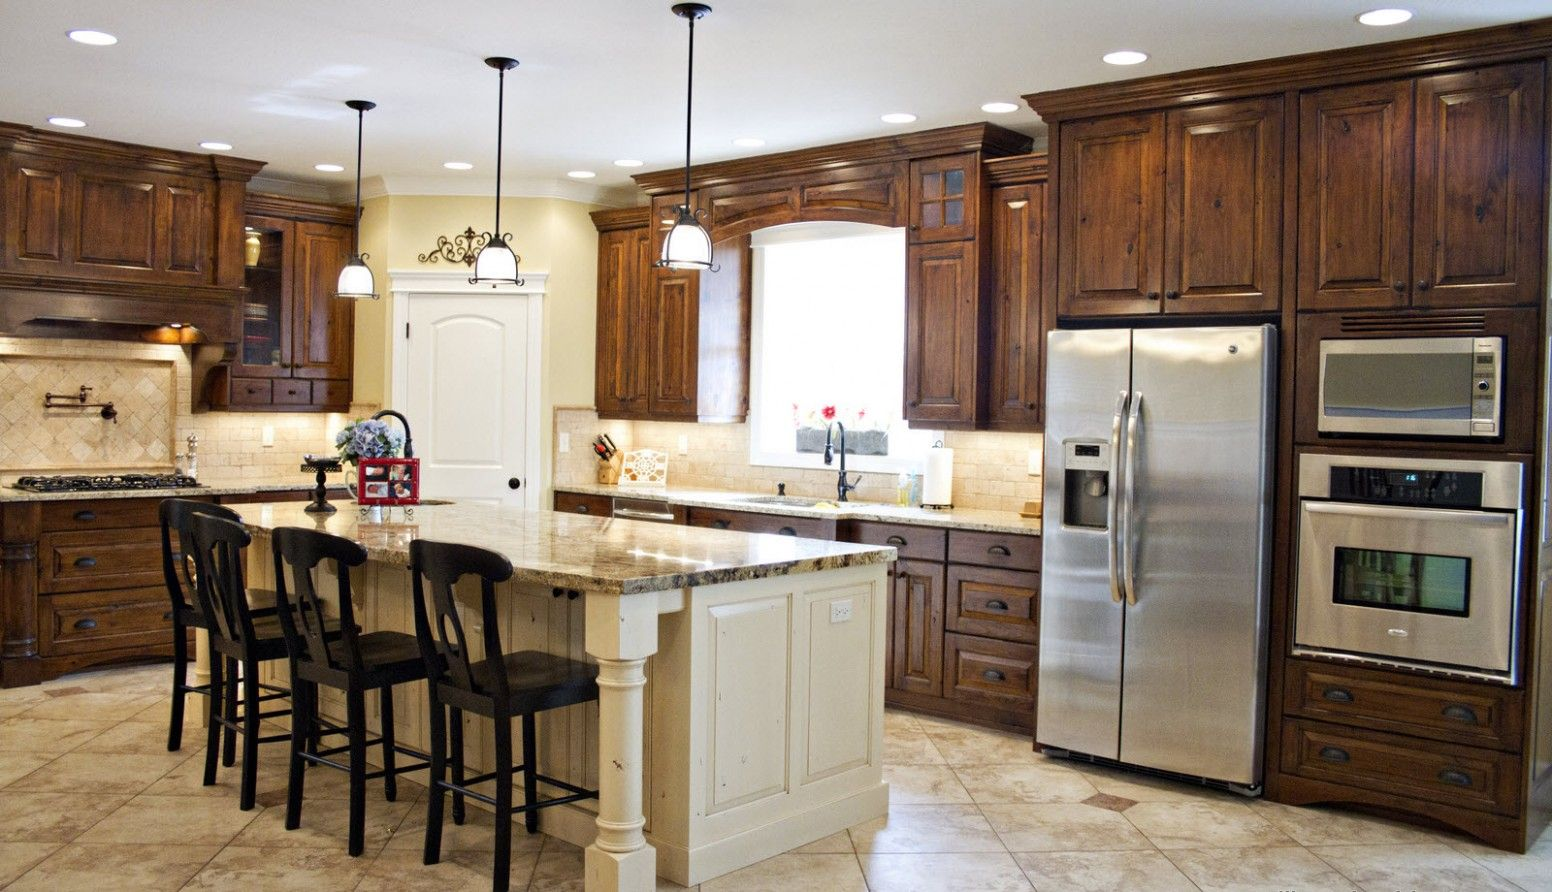 Kitchen Remodeling El Paso Tx In 2020 Eclectic Kitchen Design Eclectic Kitchen Kitchen Design